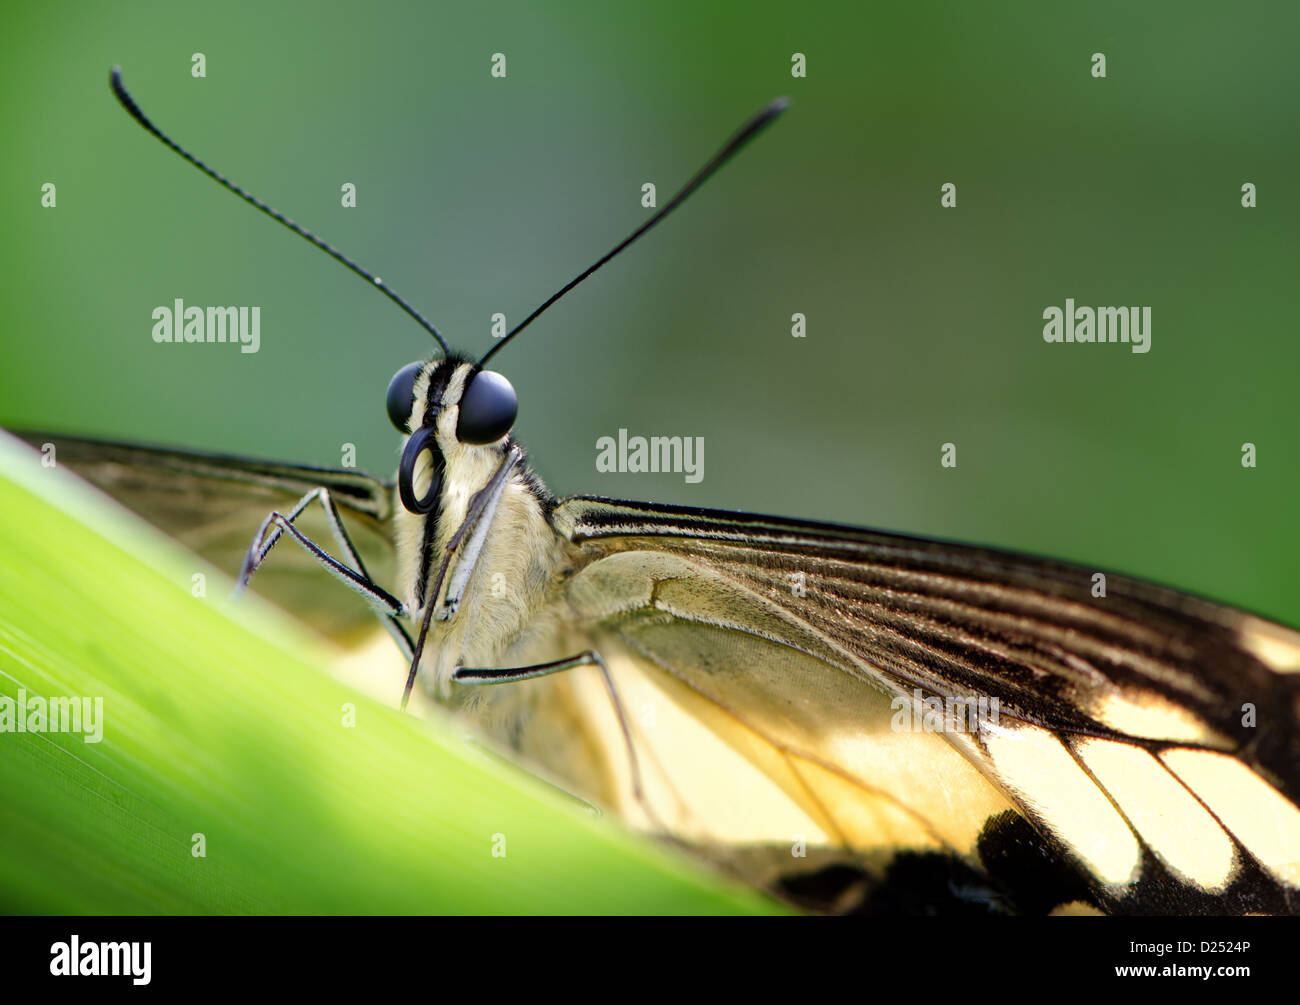 Front view / macro of a swallowtail butterfly on a leaf - Stock Image